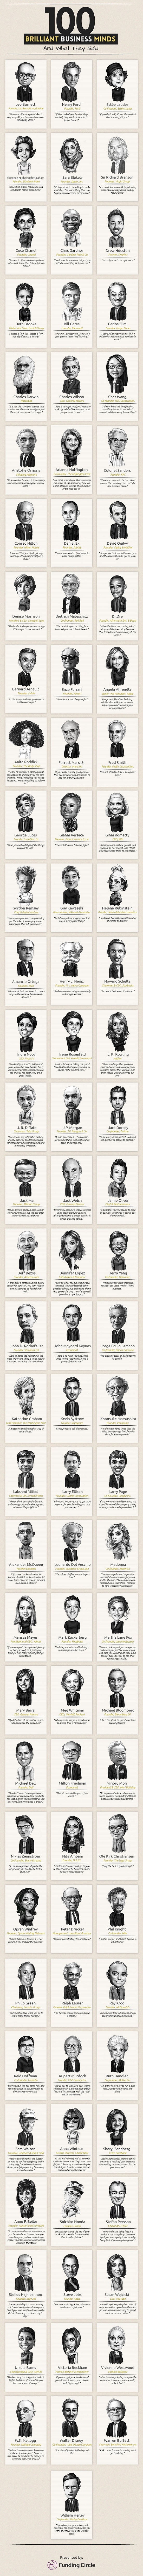 100 Brilliant Most Sccessful Business Minds and their Beliefs